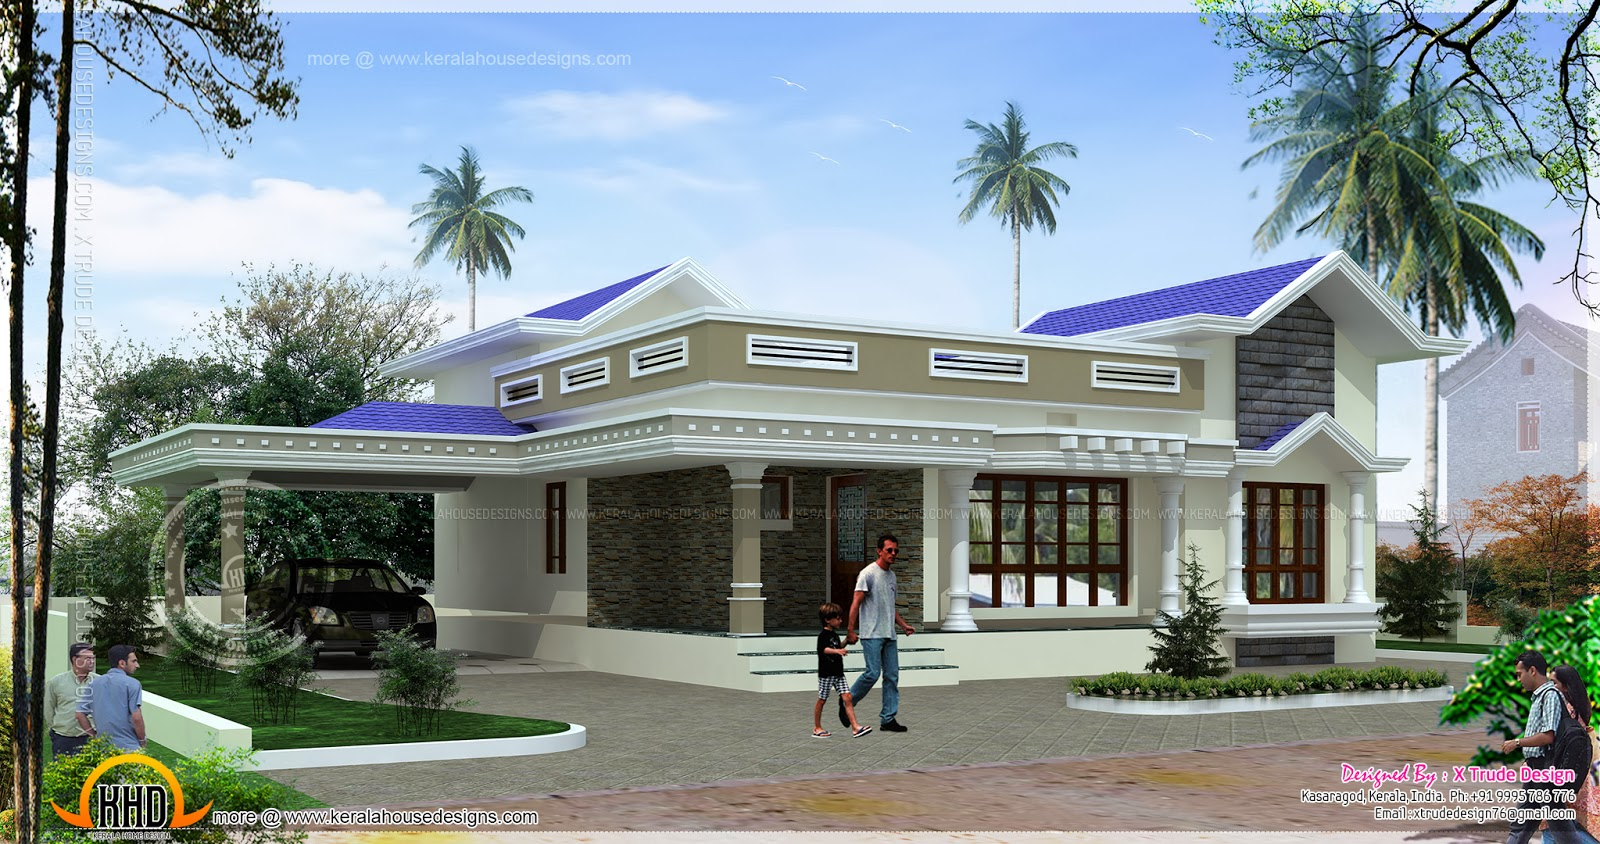 Single floor small house design kerala home design and for Small house design for bangladesh